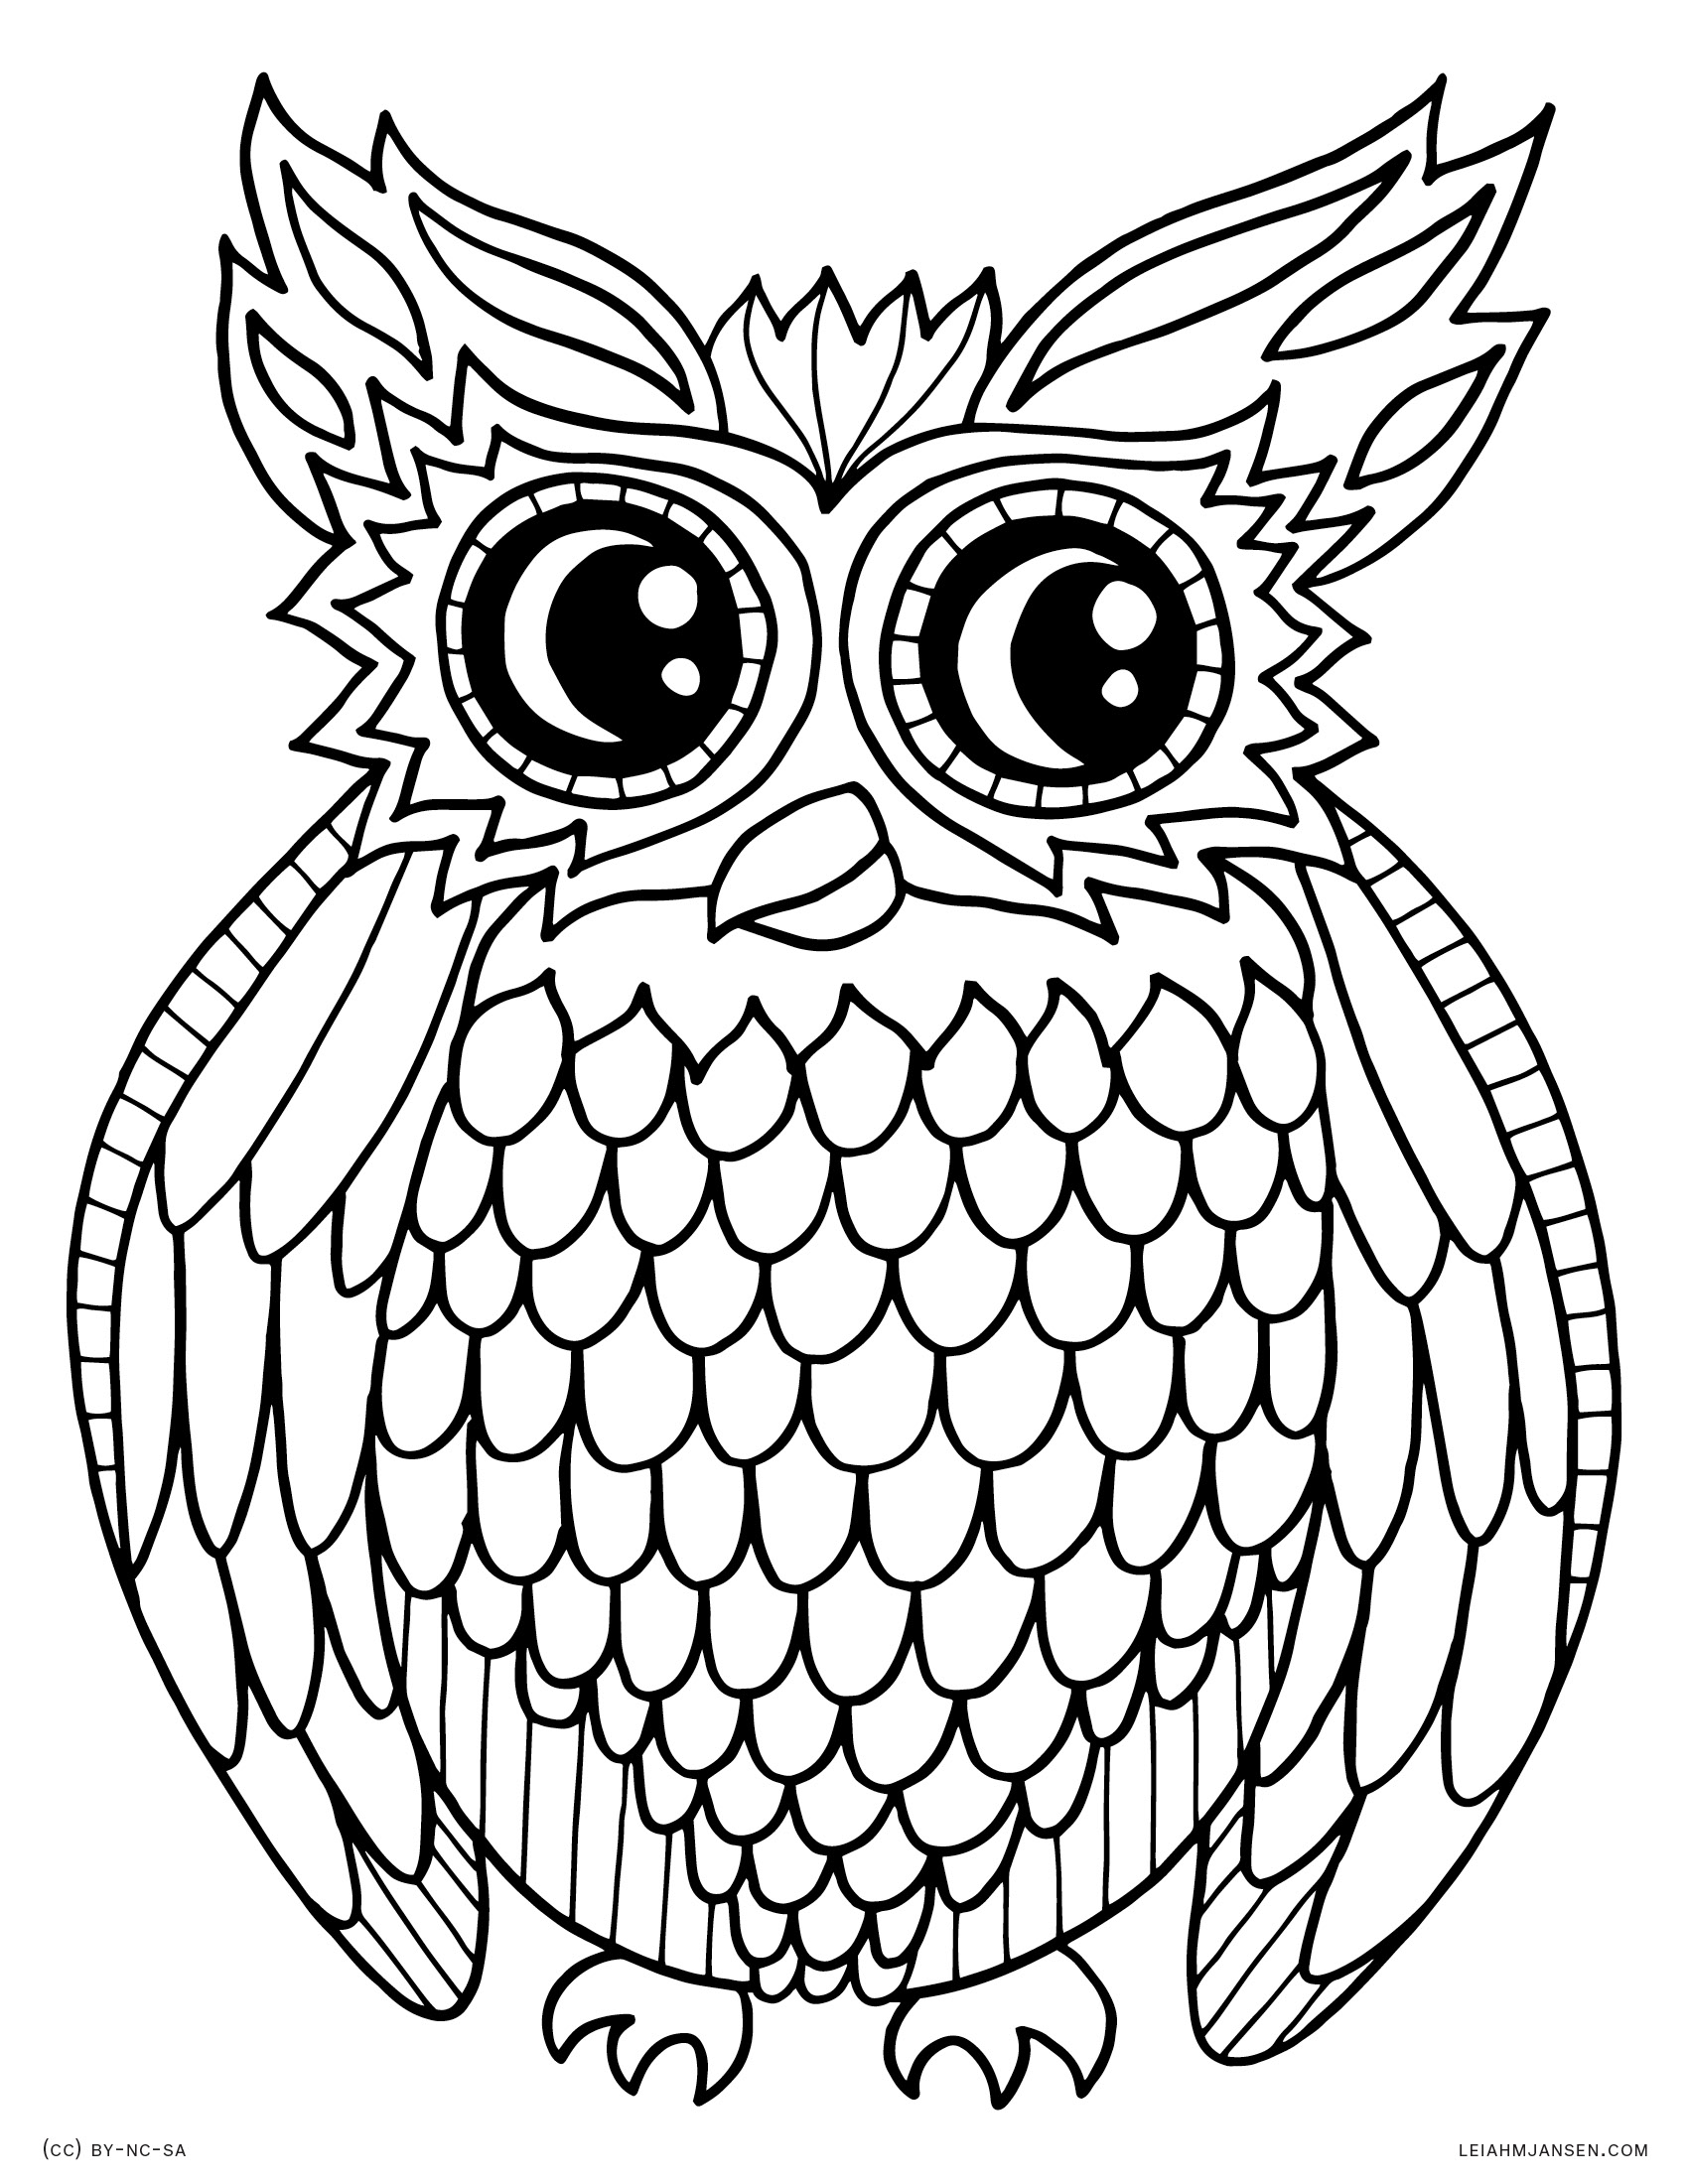 coloring picture of an owl simple owl coloring pages bestappsforkidscom owl coloring picture an of